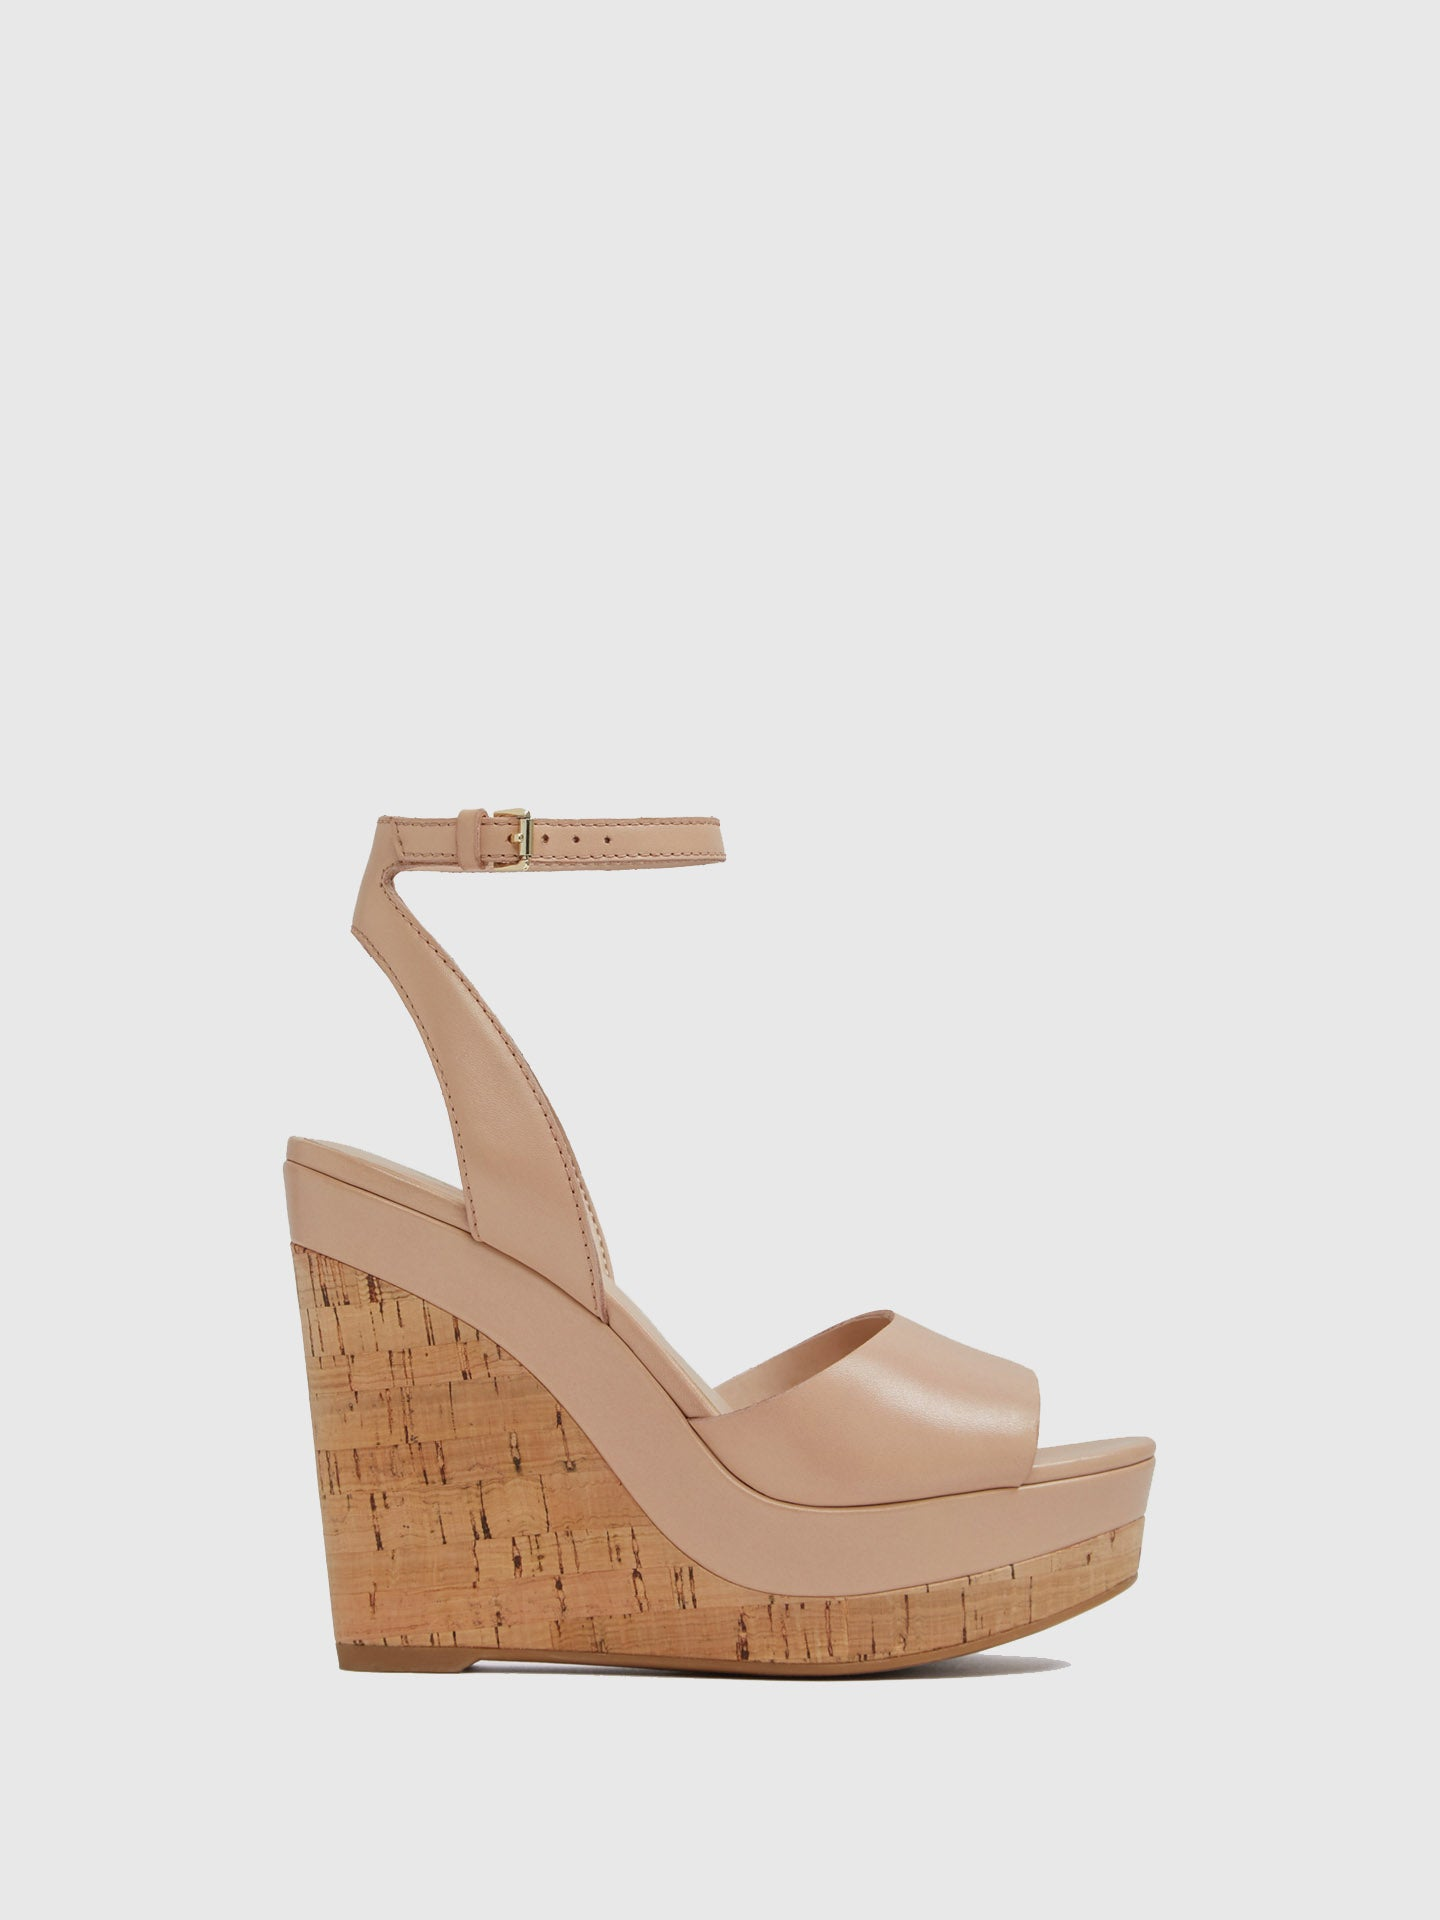 Aldo Beige Wedge Sandals